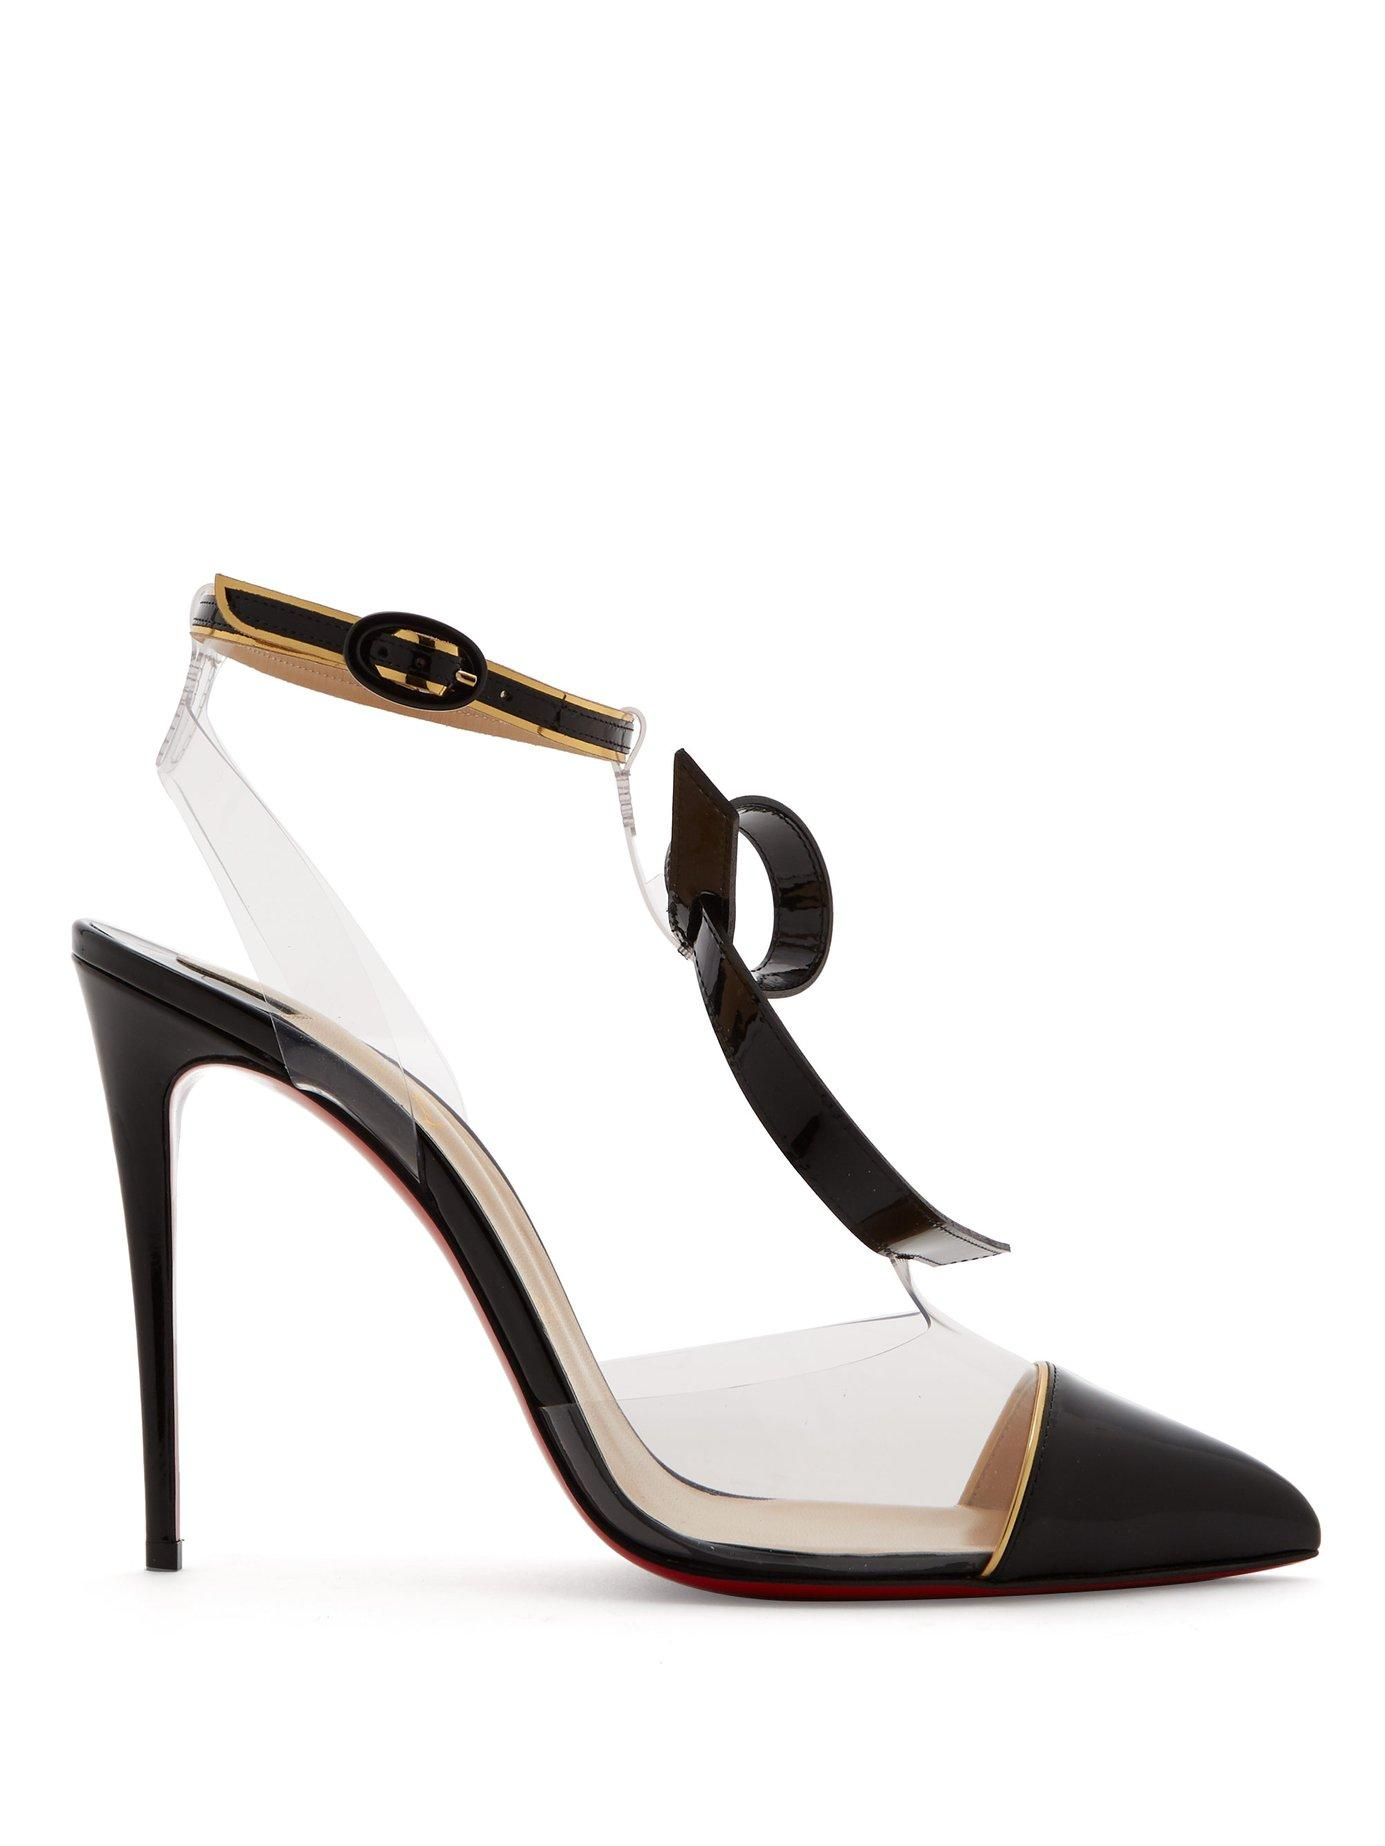 a242f8895fb Lyst - Christian Louboutin Alta Firma Leather And Perspex Pumps in Black